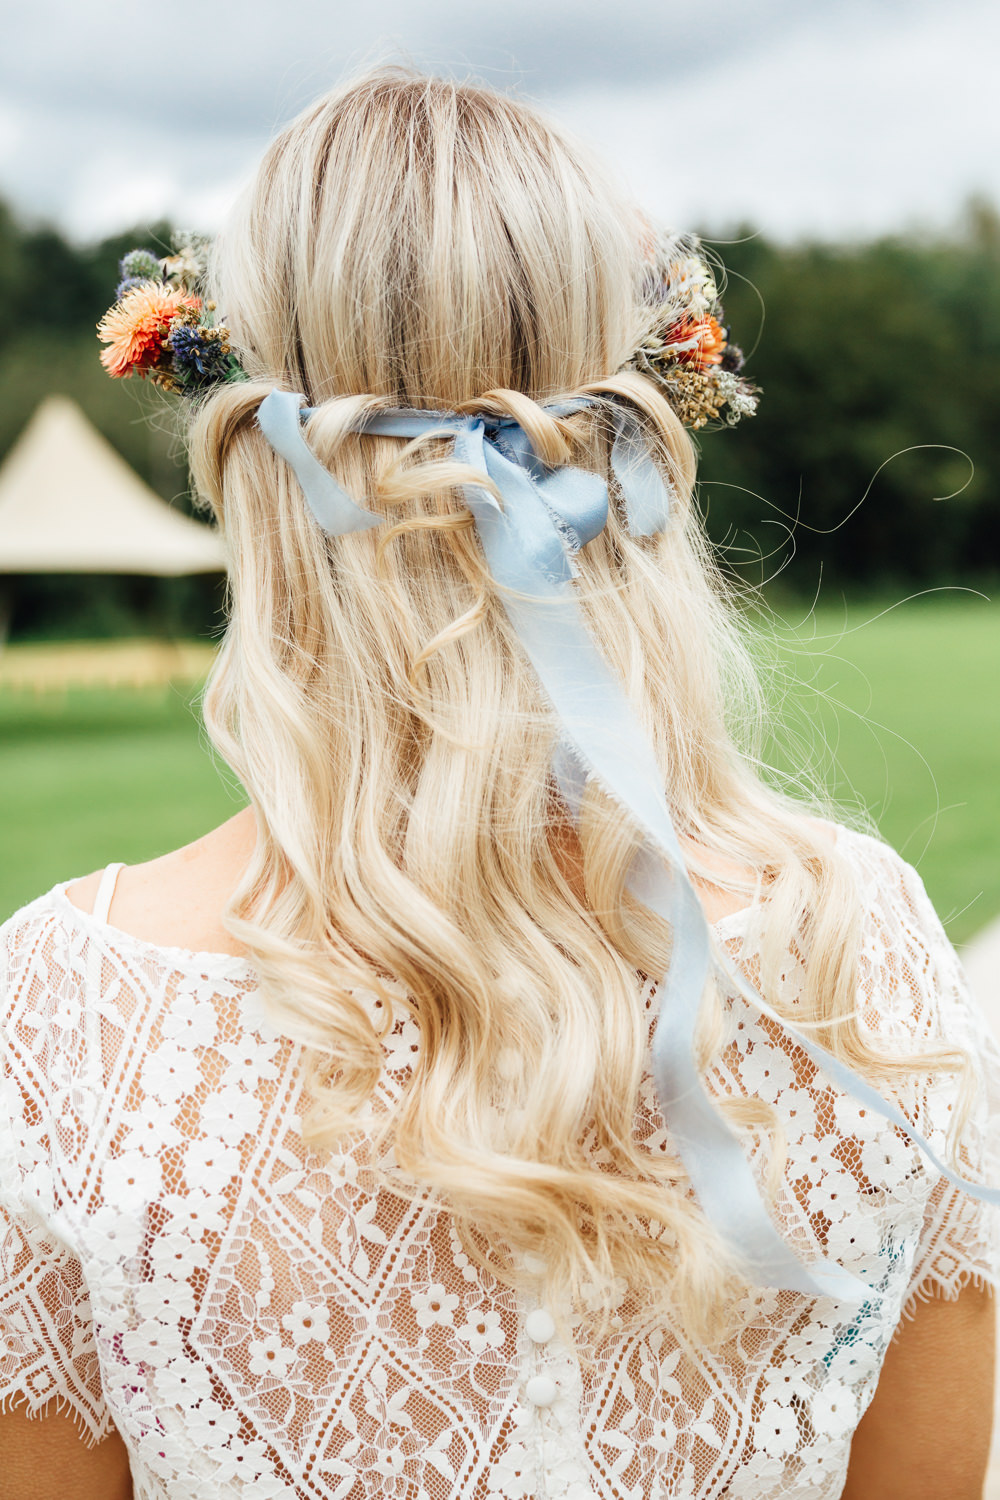 Hair Bride Bridal Flower Crown Half Up Half Down Headdress Autumn Festival Wedding Ideas Indigo and Violet Photography